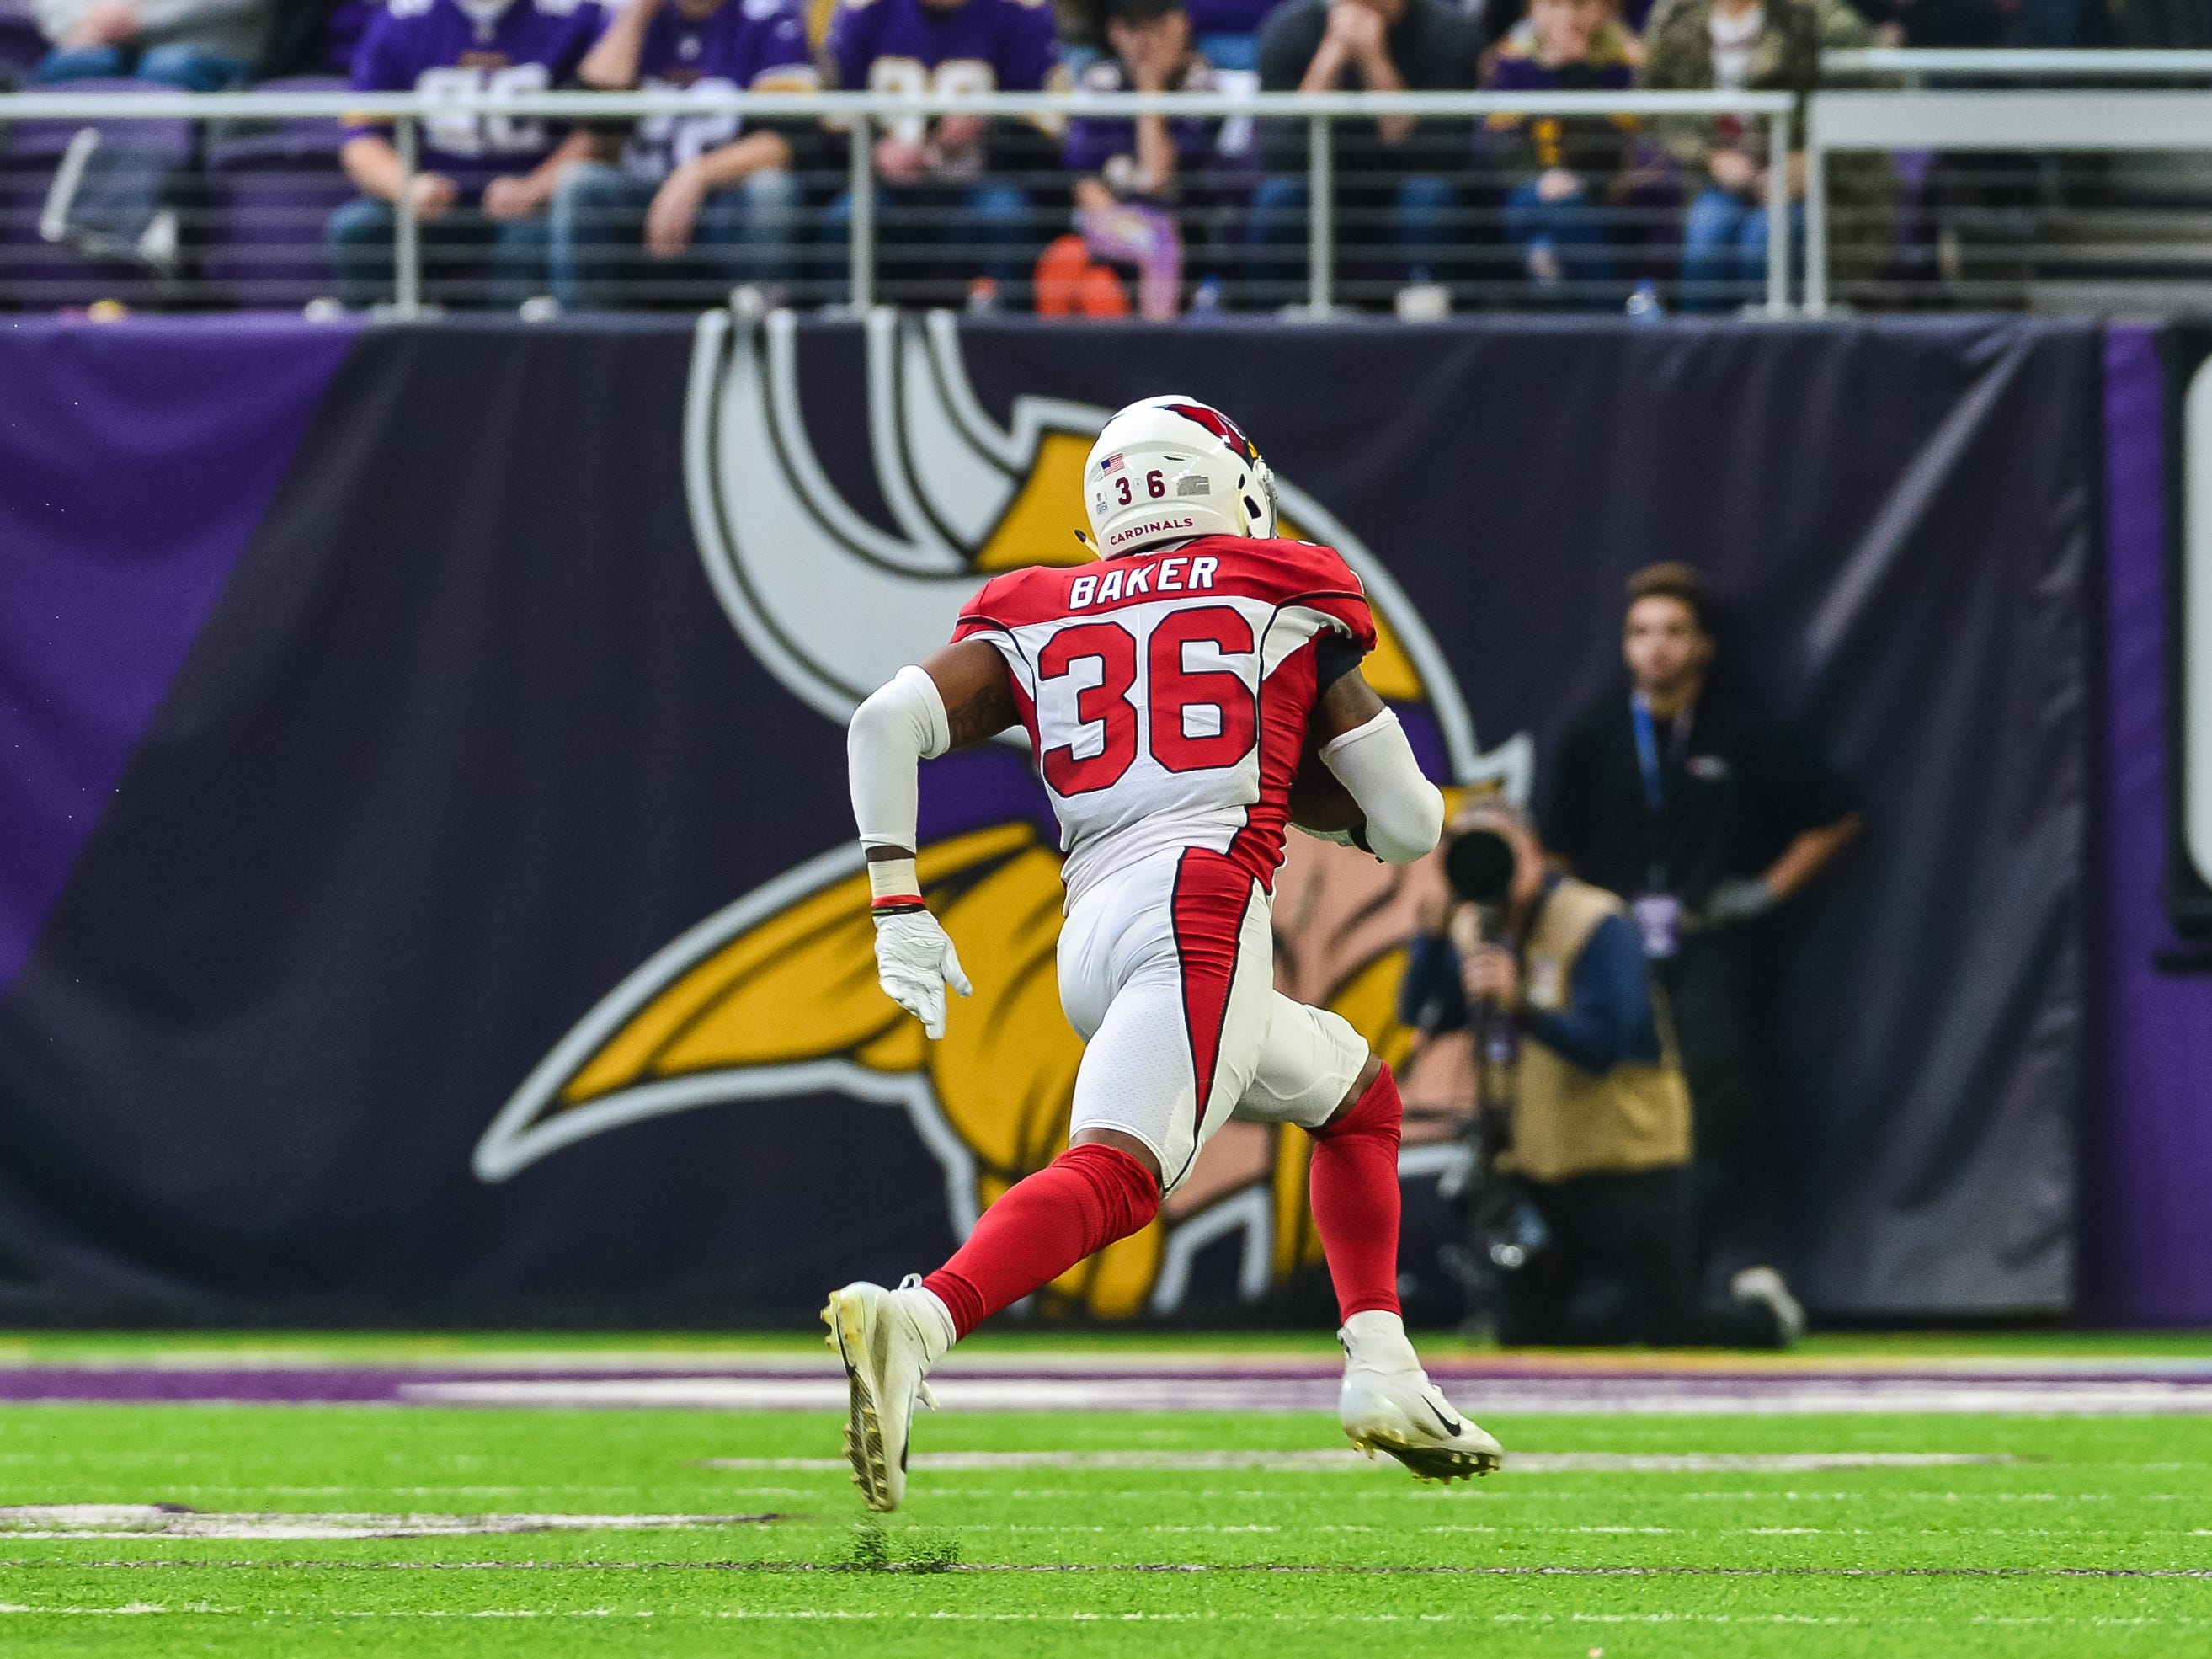 Oct 14, 2018; Minneapolis, MN, USA; Arizona Cardinals strong safety Budda Baker (36) returns a fumble by Minnesota Vikings quarterback Kirk Cousins (not pictured) for a touchdown during the second quarter at U.S. Bank Stadium. Mandatory Credit: Jeffrey Becker-USA TODAY Sports